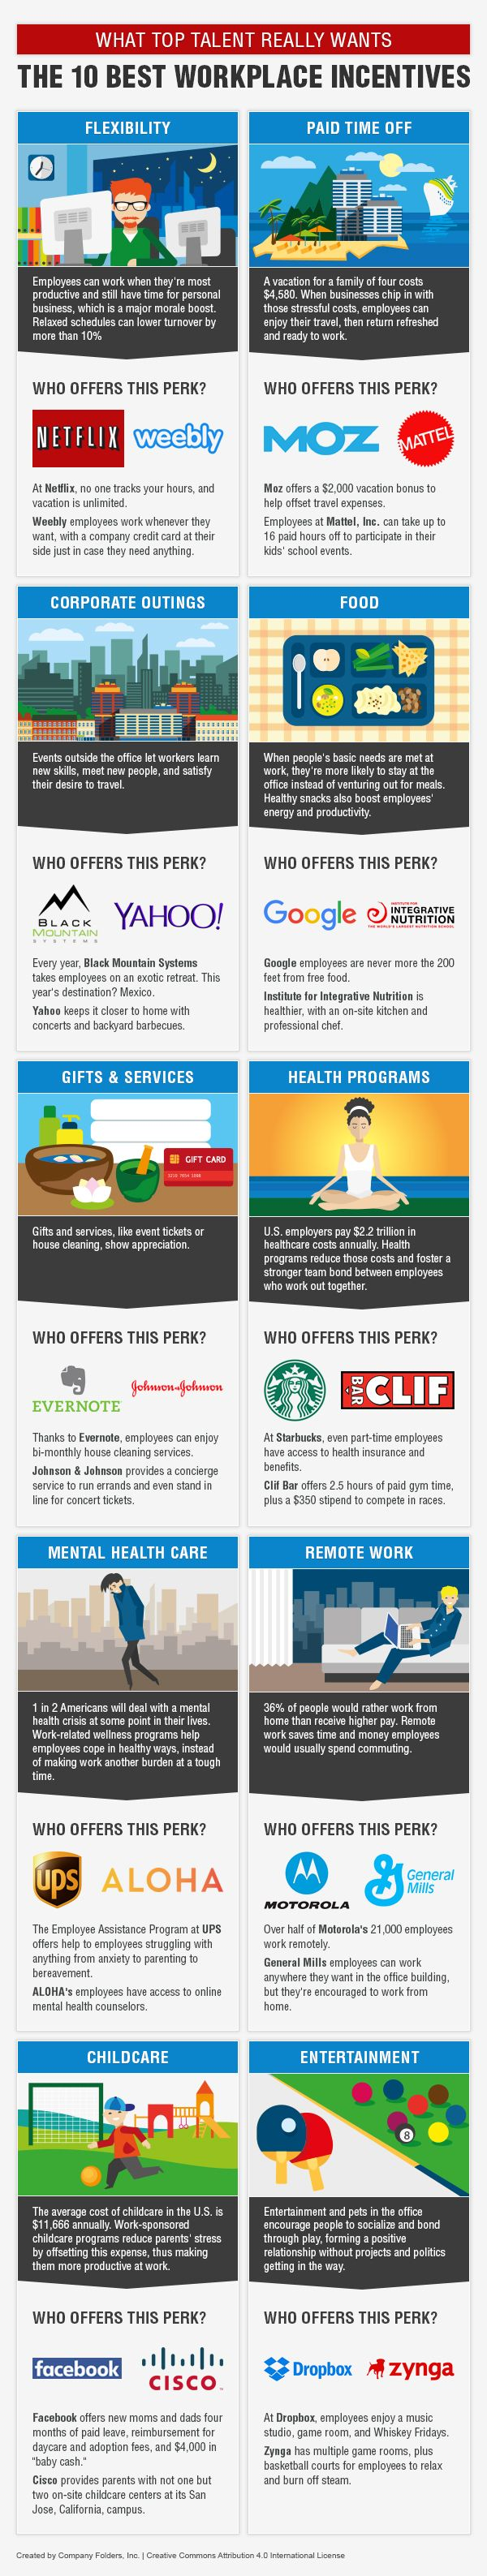 The 10 Best Workplace Incentives #Infographic